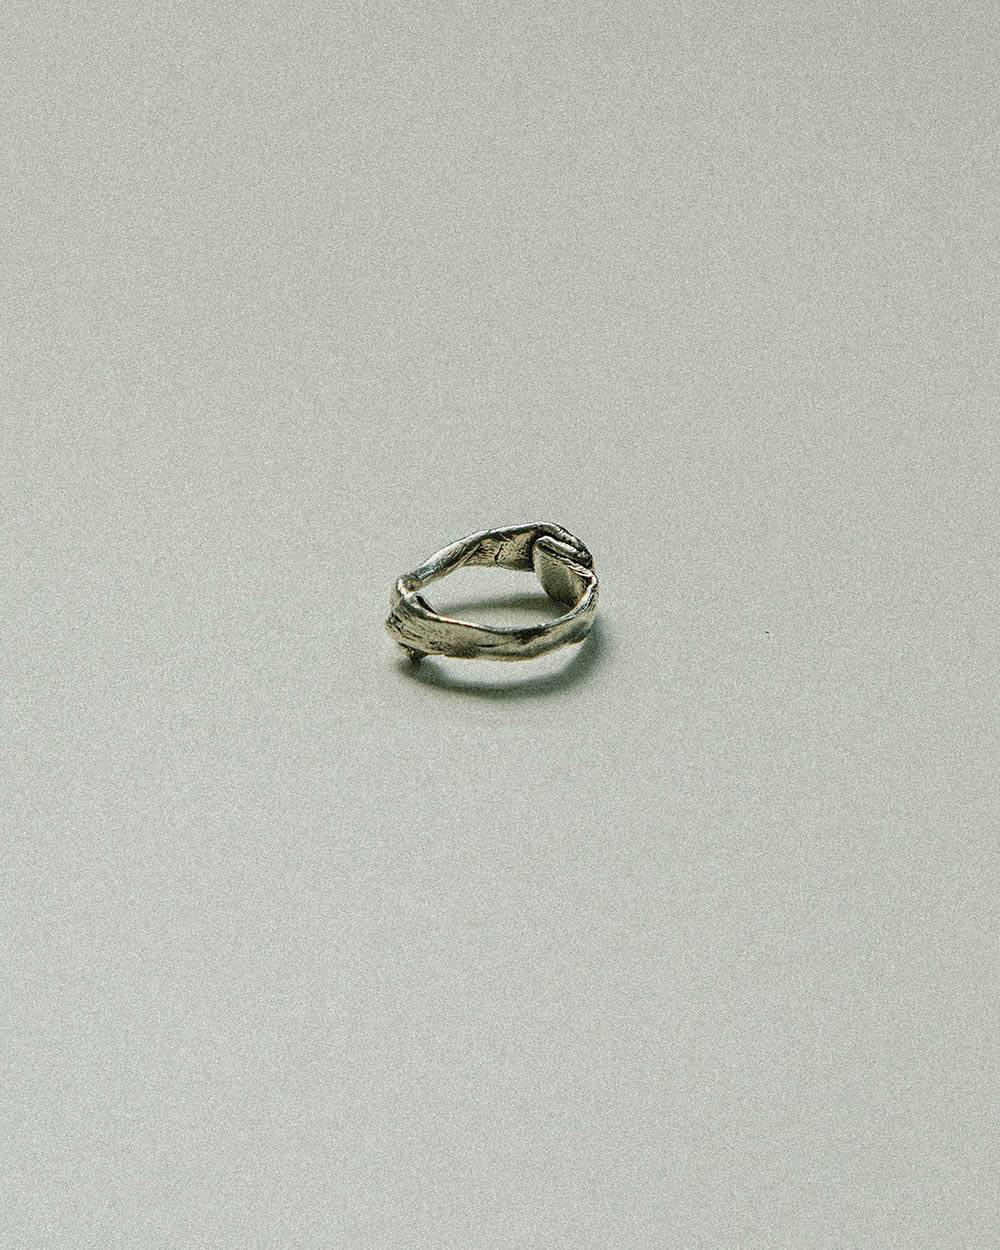 oxidized sterling silver handmade ring